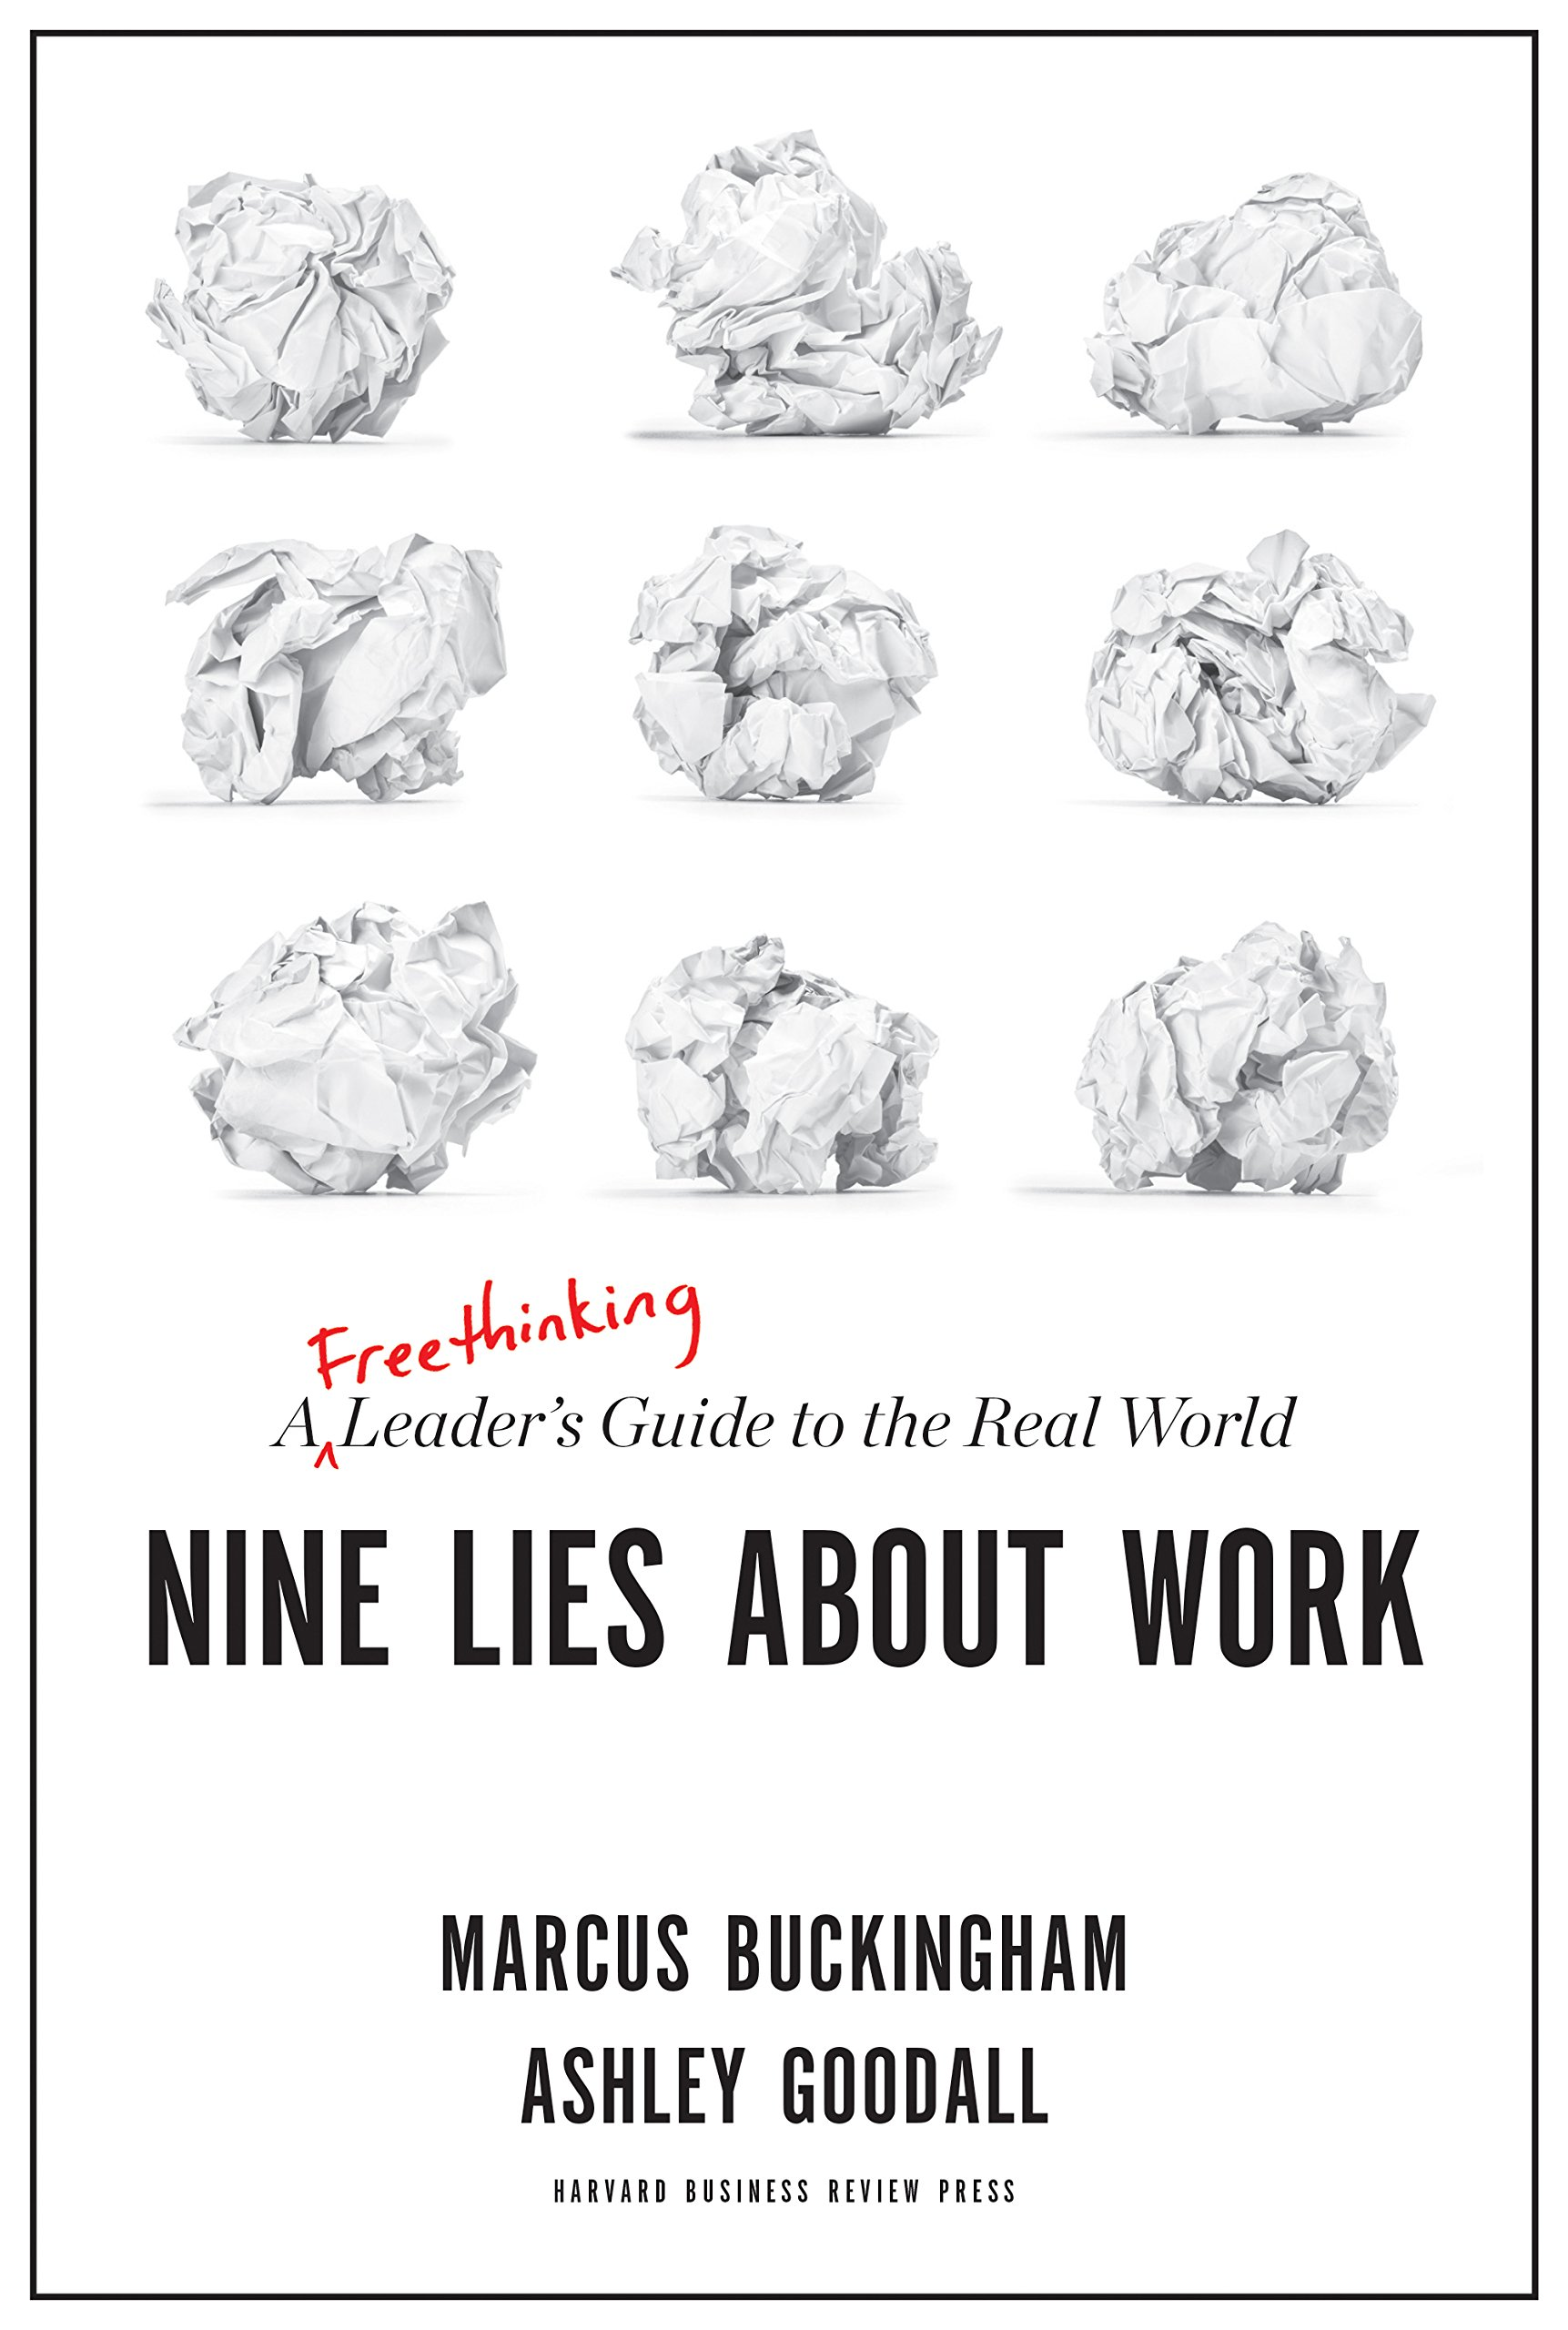 Nine Lies About Work by Marcus Buckingham and Ashley Goodall